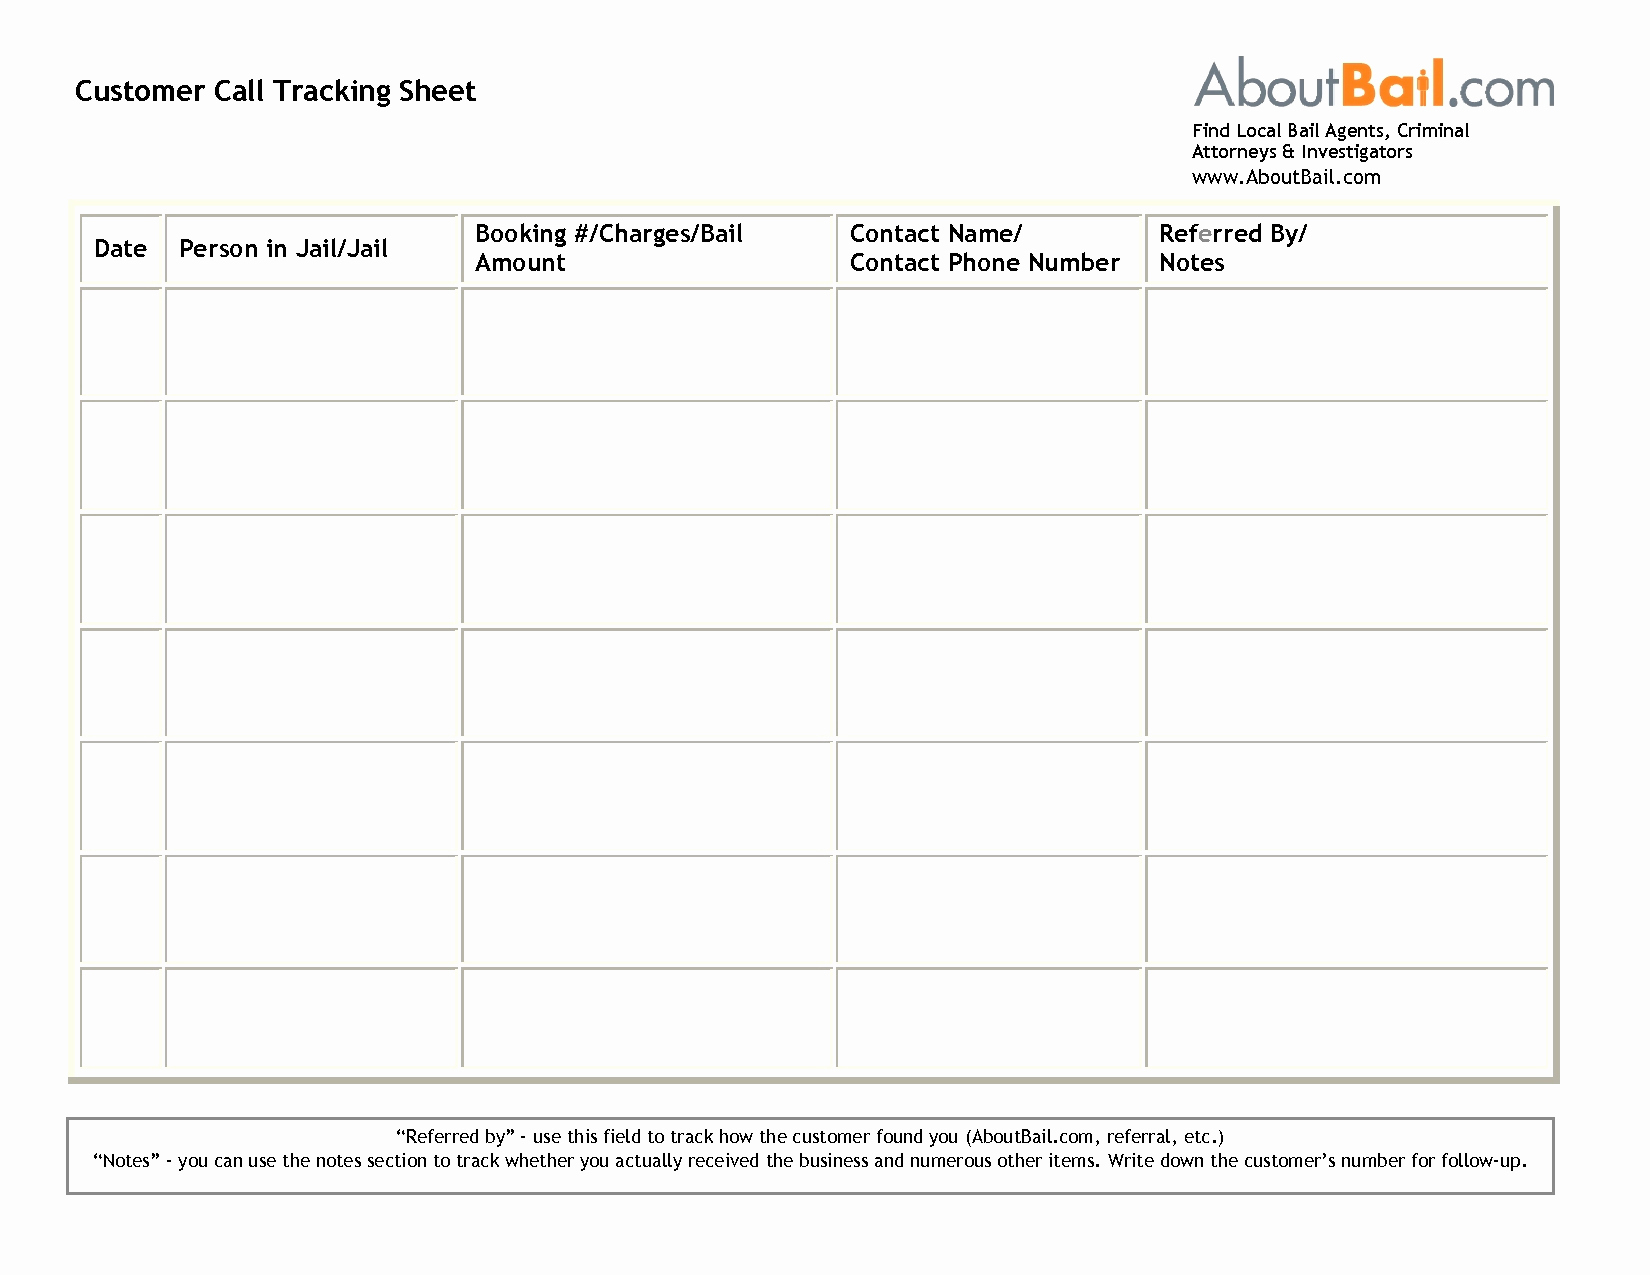 Tracking Sales Calls Spreadsheet Lovely Sales Calls Tracking In Sales Call Tracker Spreadsheet